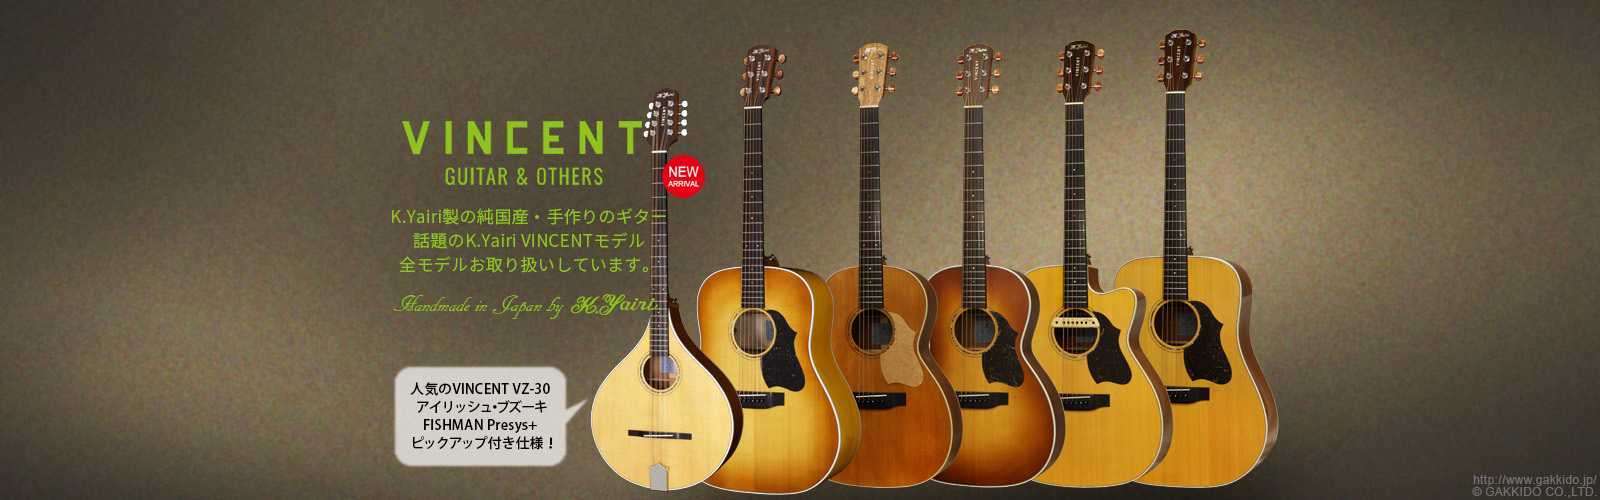 VINCENT Guitar&Others